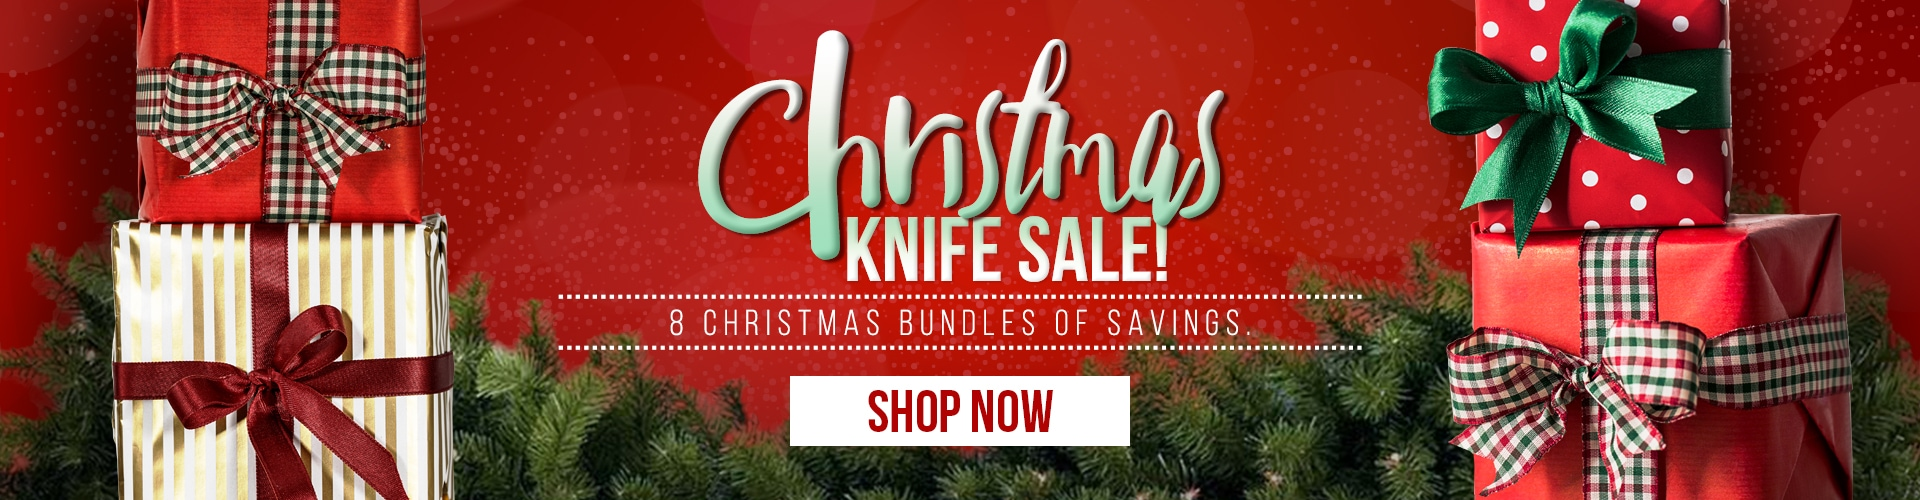 Christmas Knife Sale RavenCrest Tactical